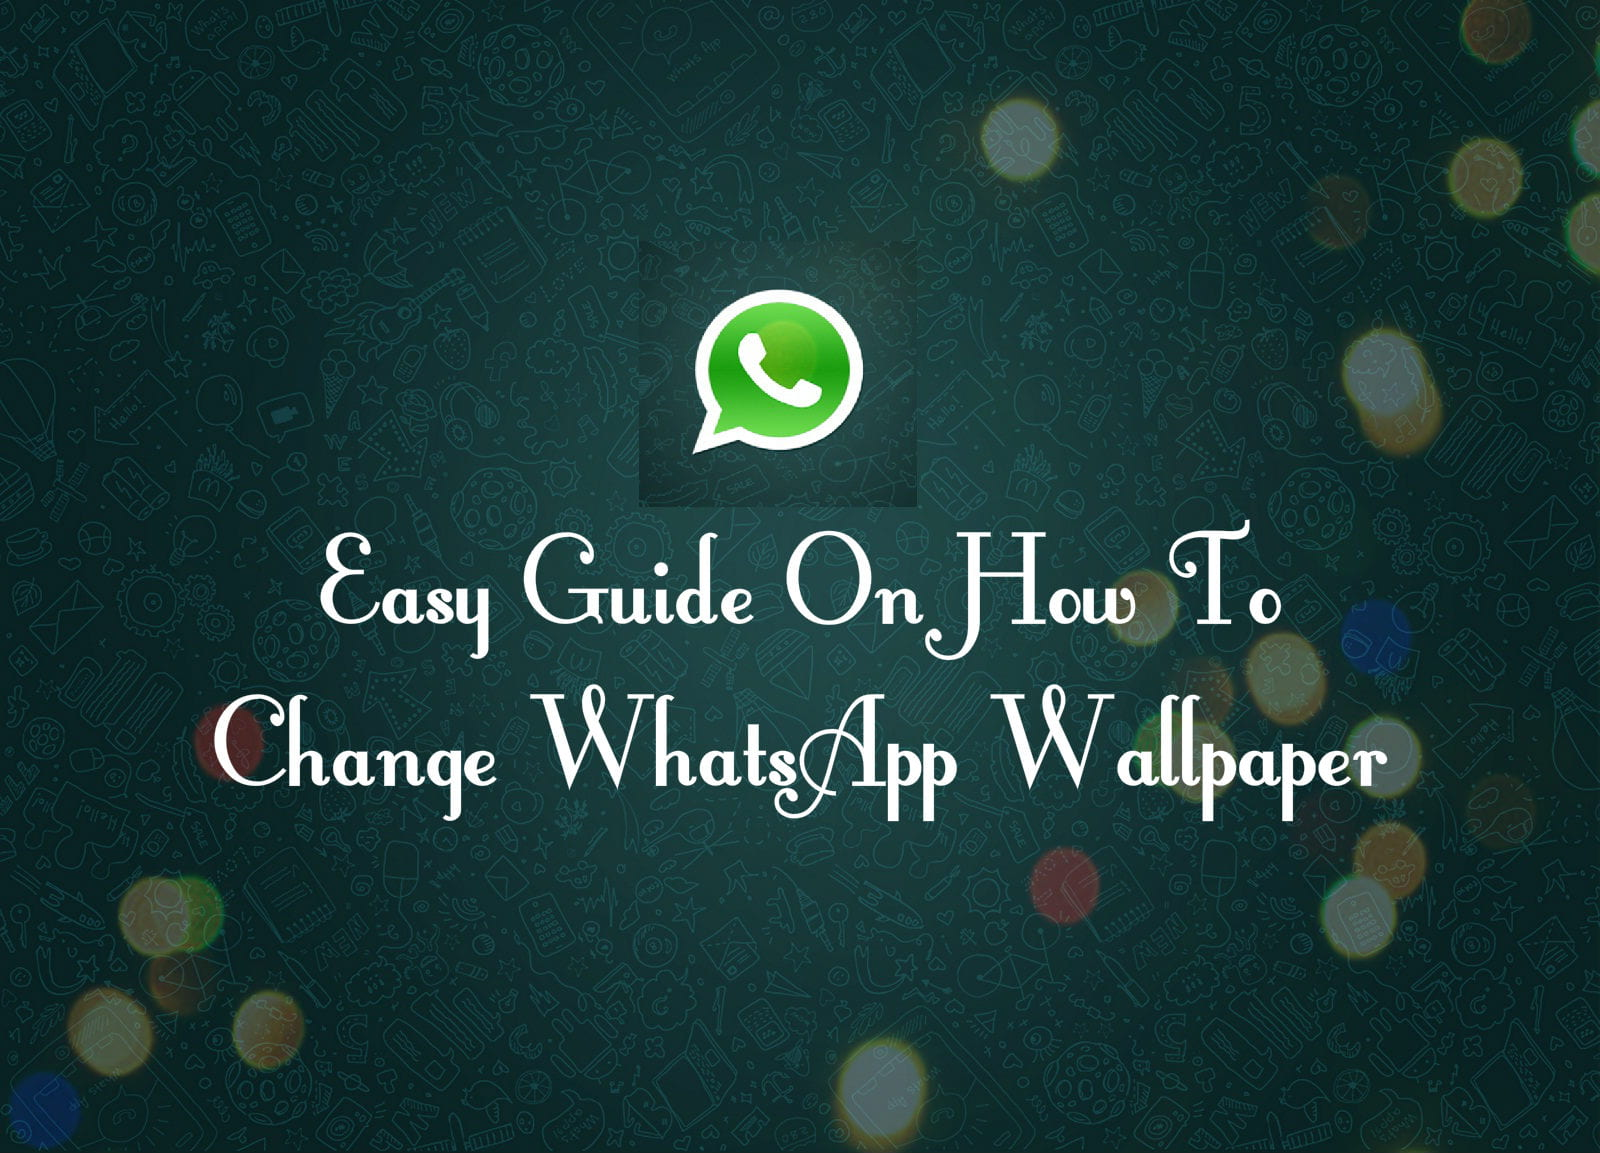 Whatsapp Wallpaper